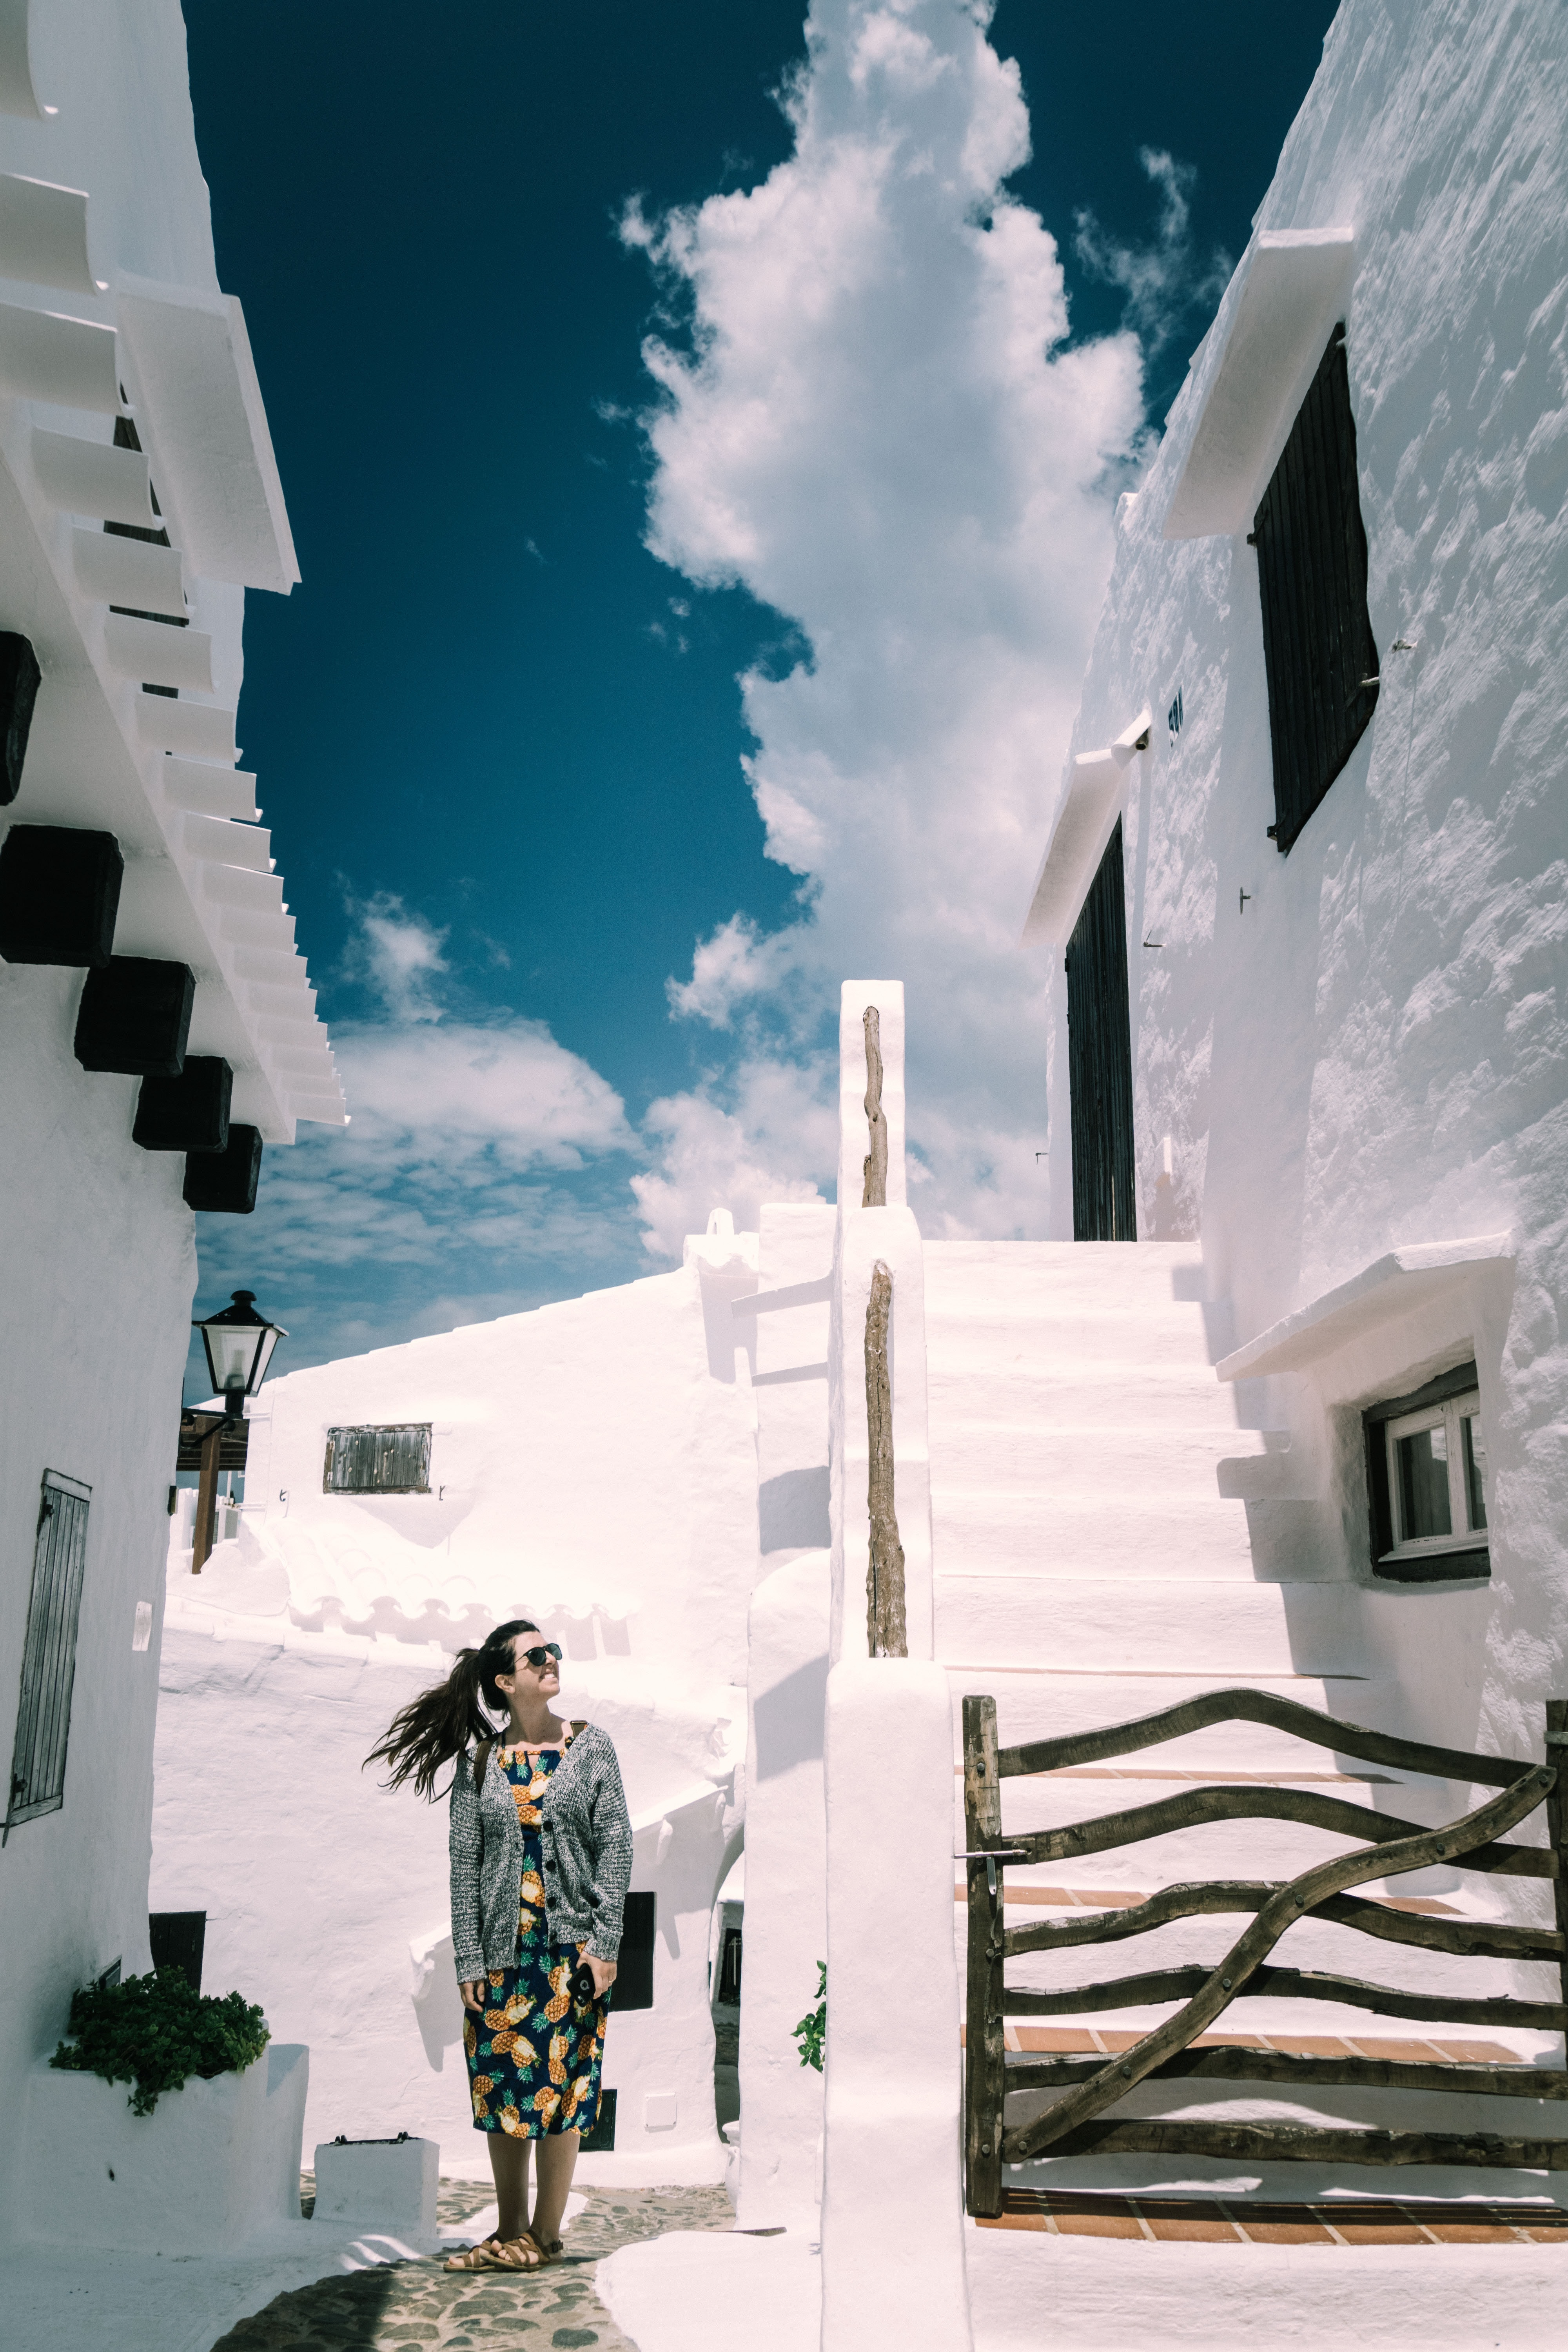 woman standing near white building and stairs